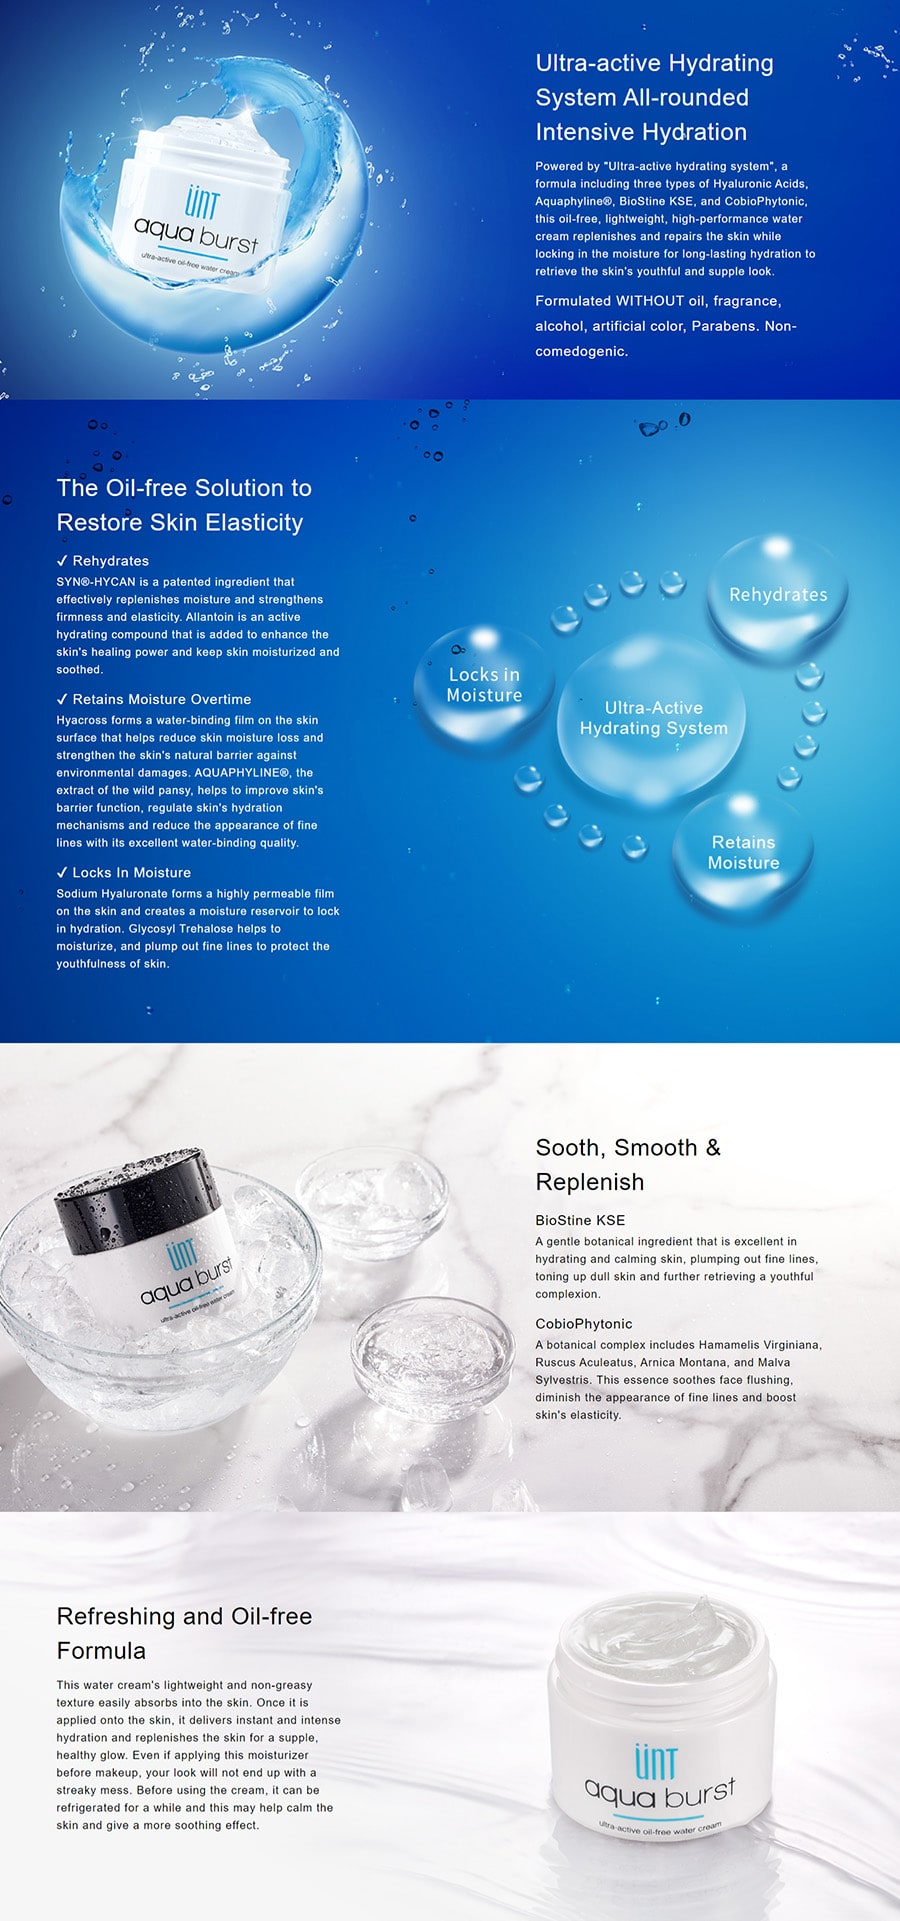 Ultra-active Oil-free Water Cream - Features